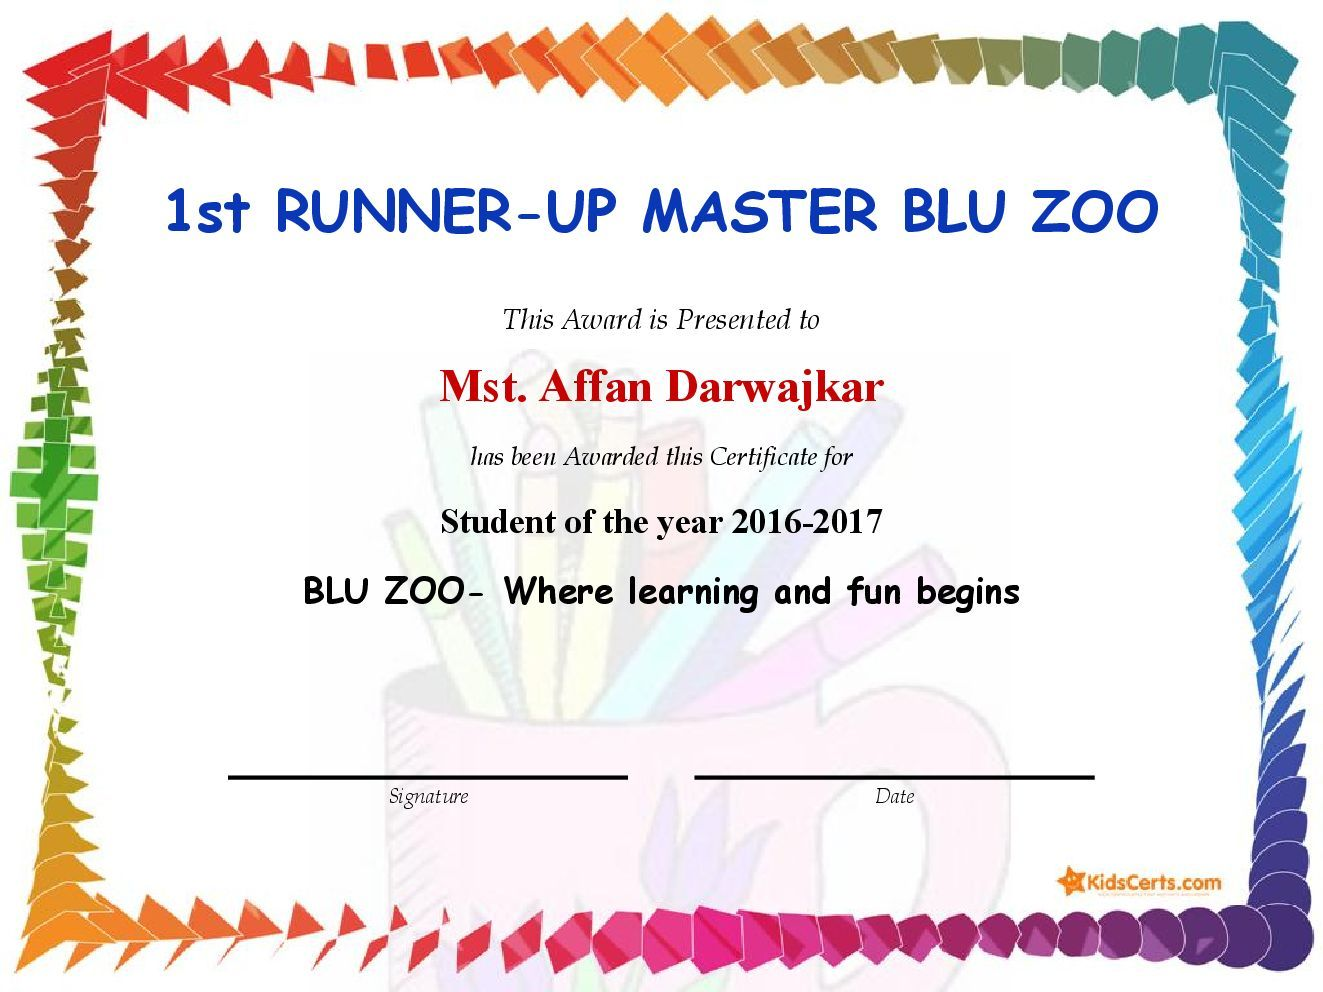 1st RUNNER-UP MASTER BLU ZOO - Student of the year 2016-2017 | Award ...